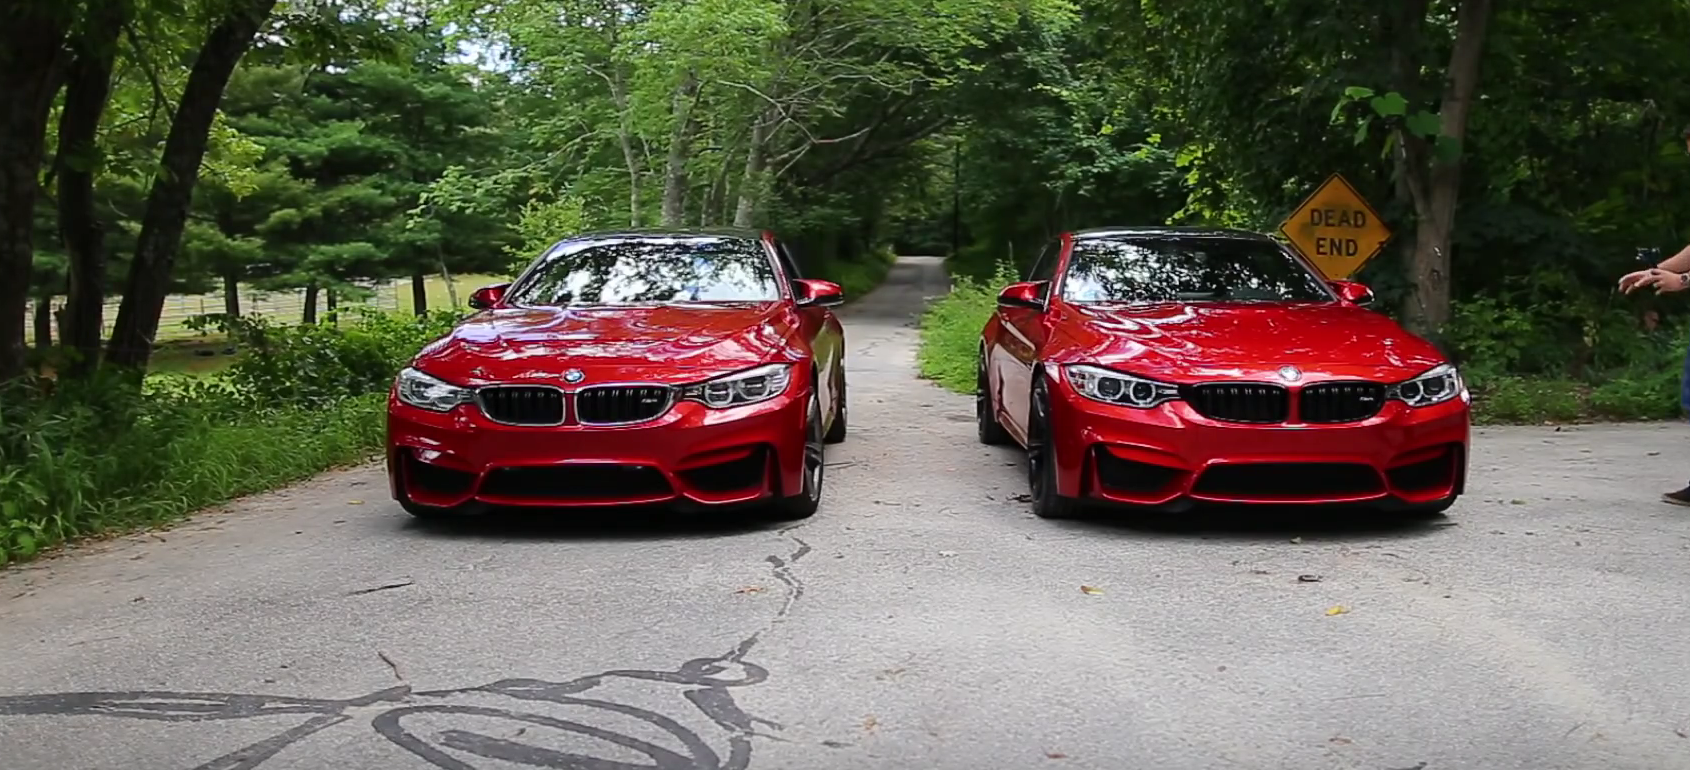 bmw m4 manual and dct transmissions compared autoevolution rh autoevolution com bmw m3 e92 dct or manual e92 m3 dct vs manual